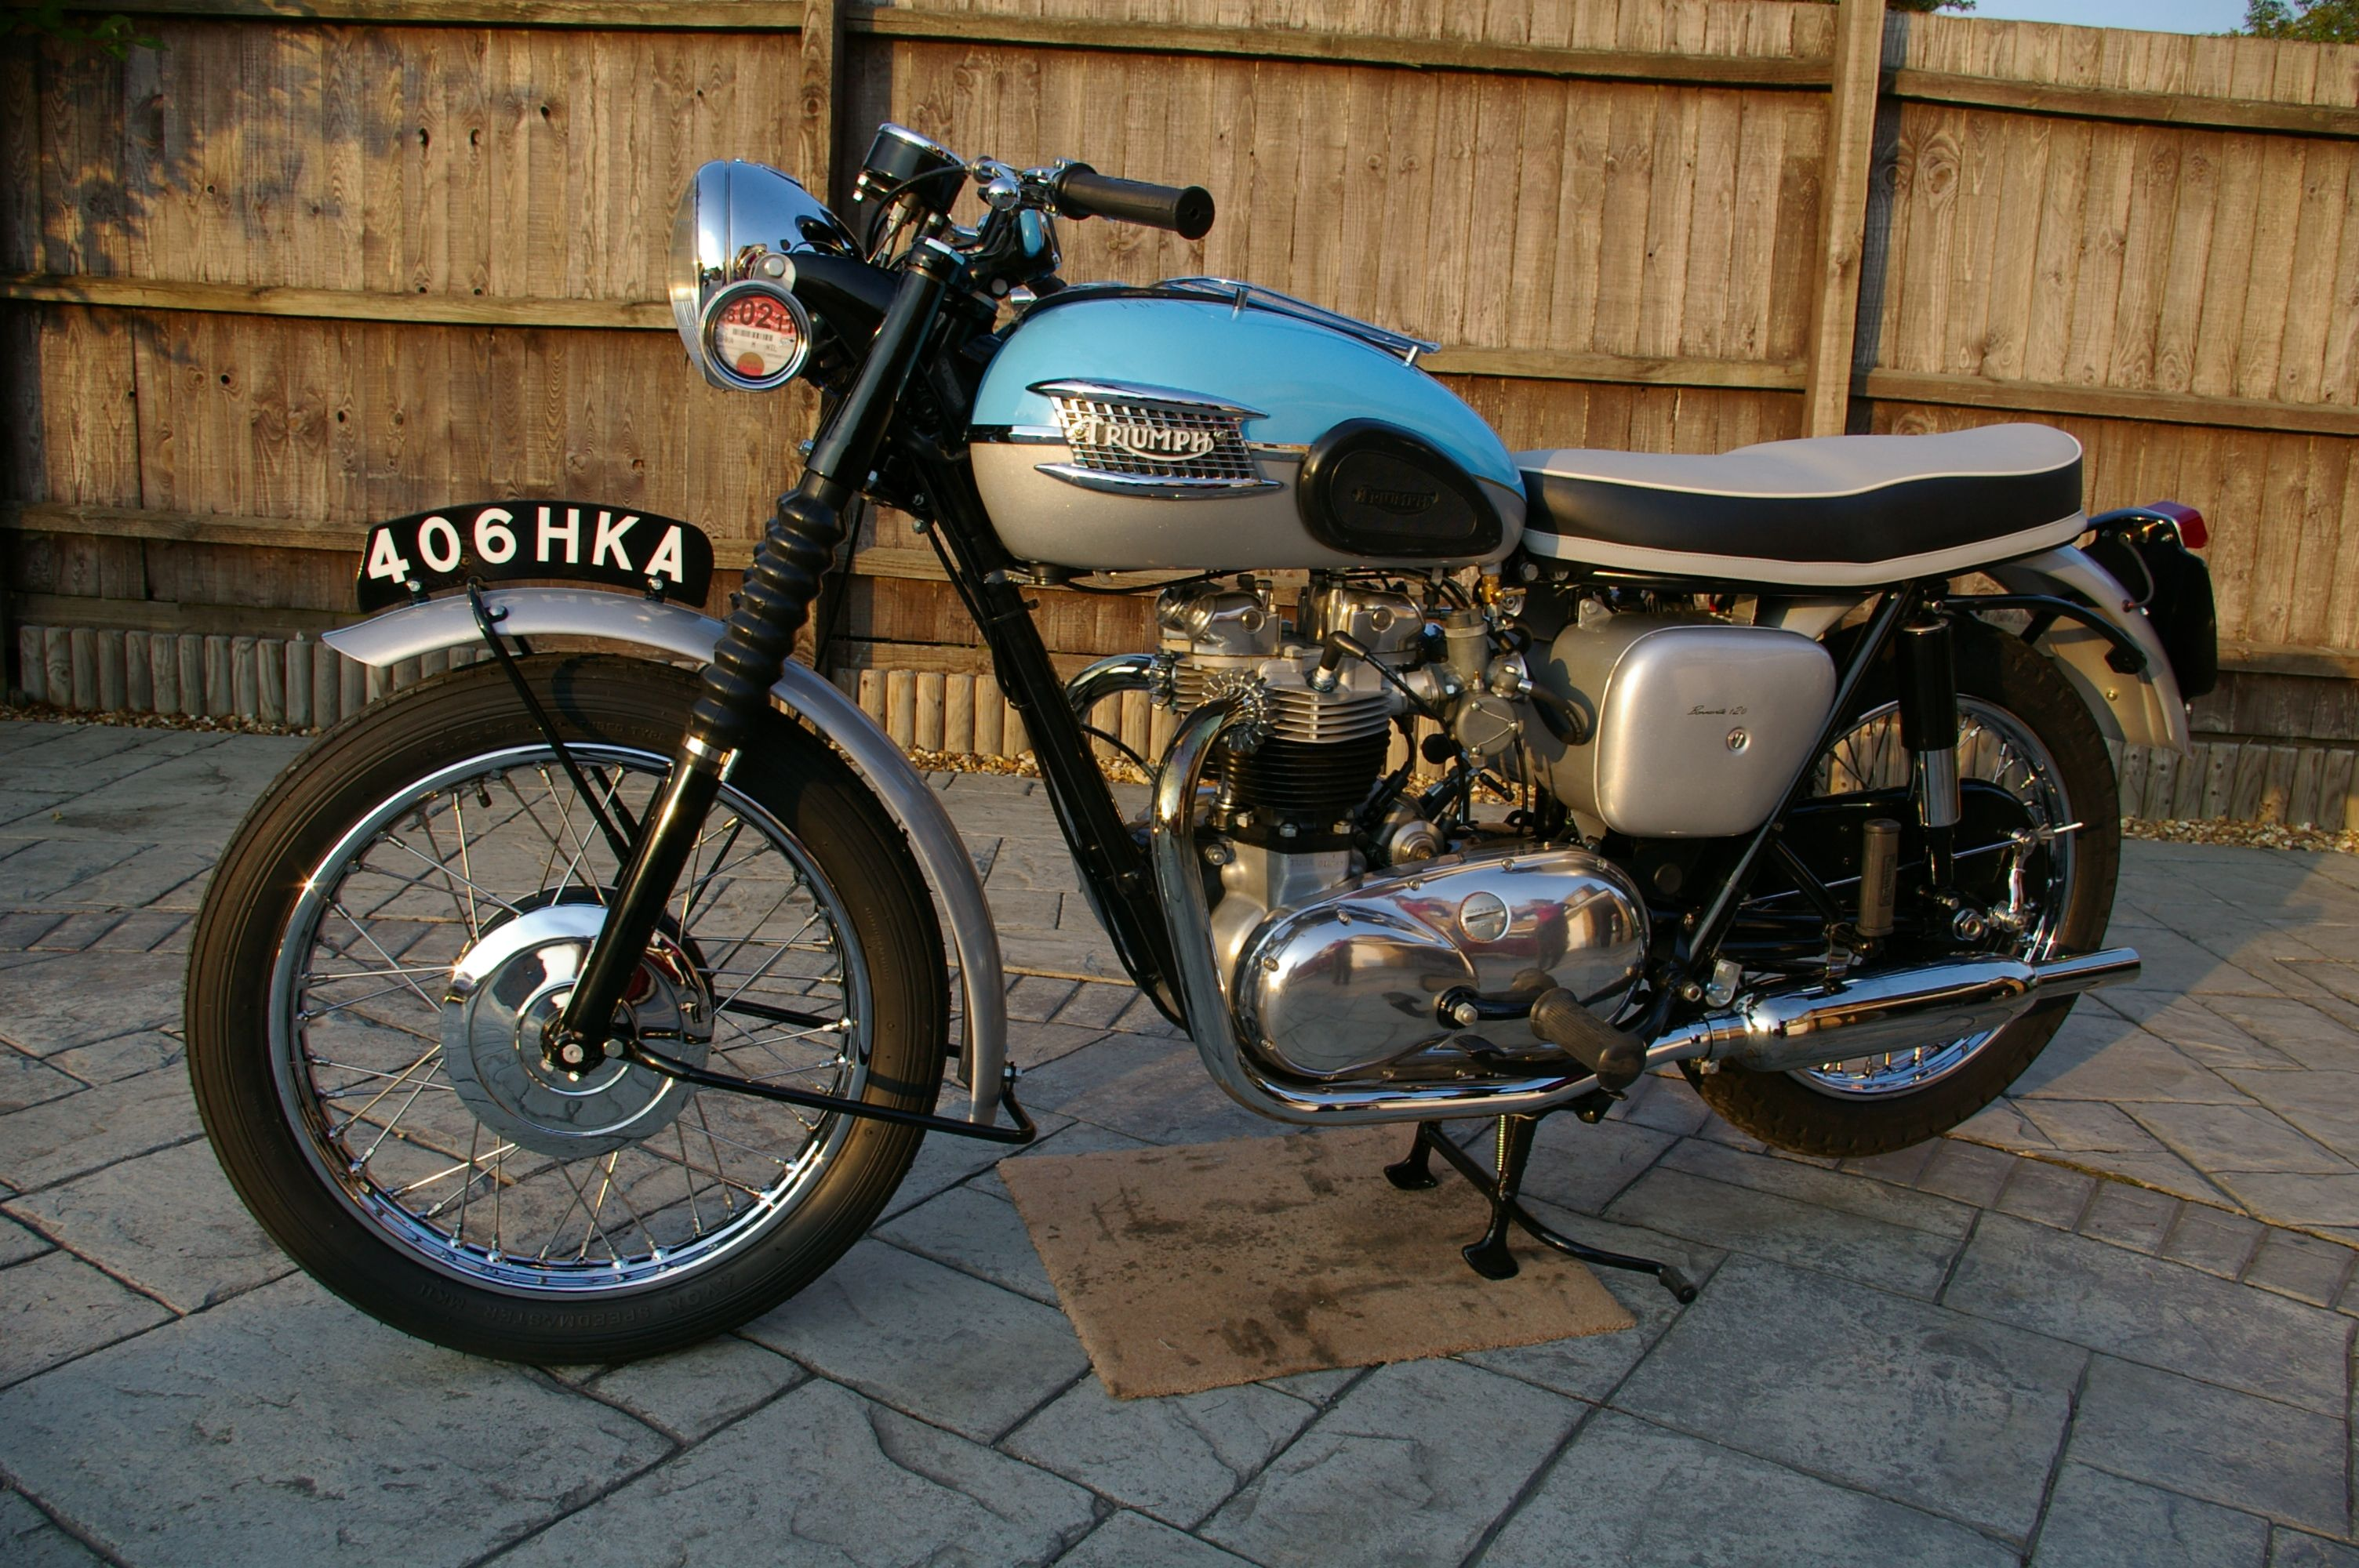 1959 Triumph Bonneville T120 From The Movie Benjamin Button Wheels